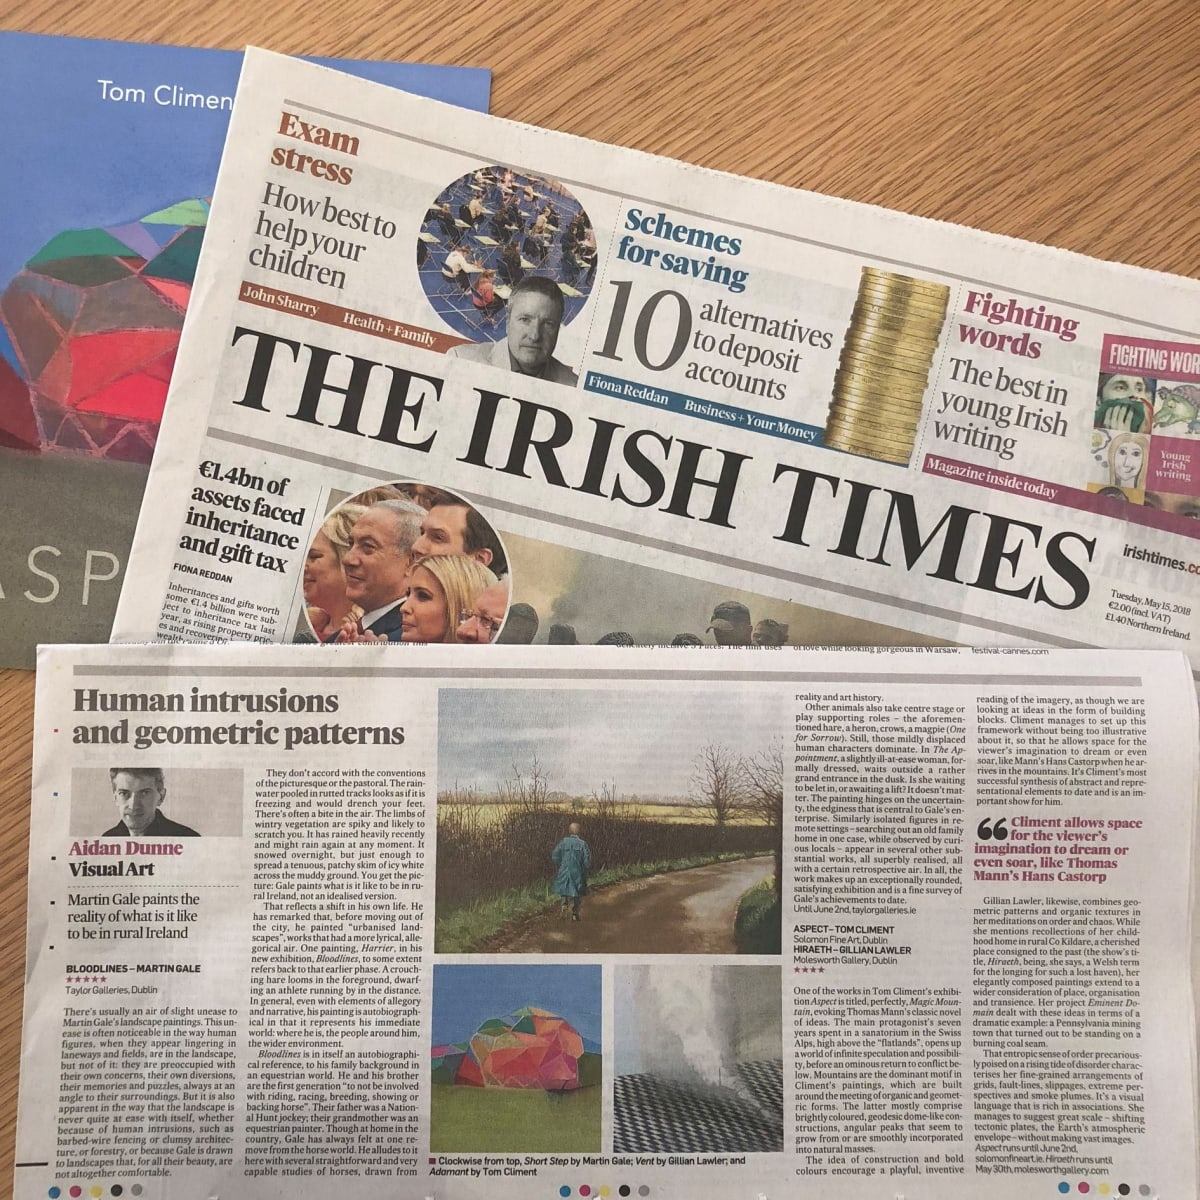 TOM CLIMENT REVIEW IRISH TIMES